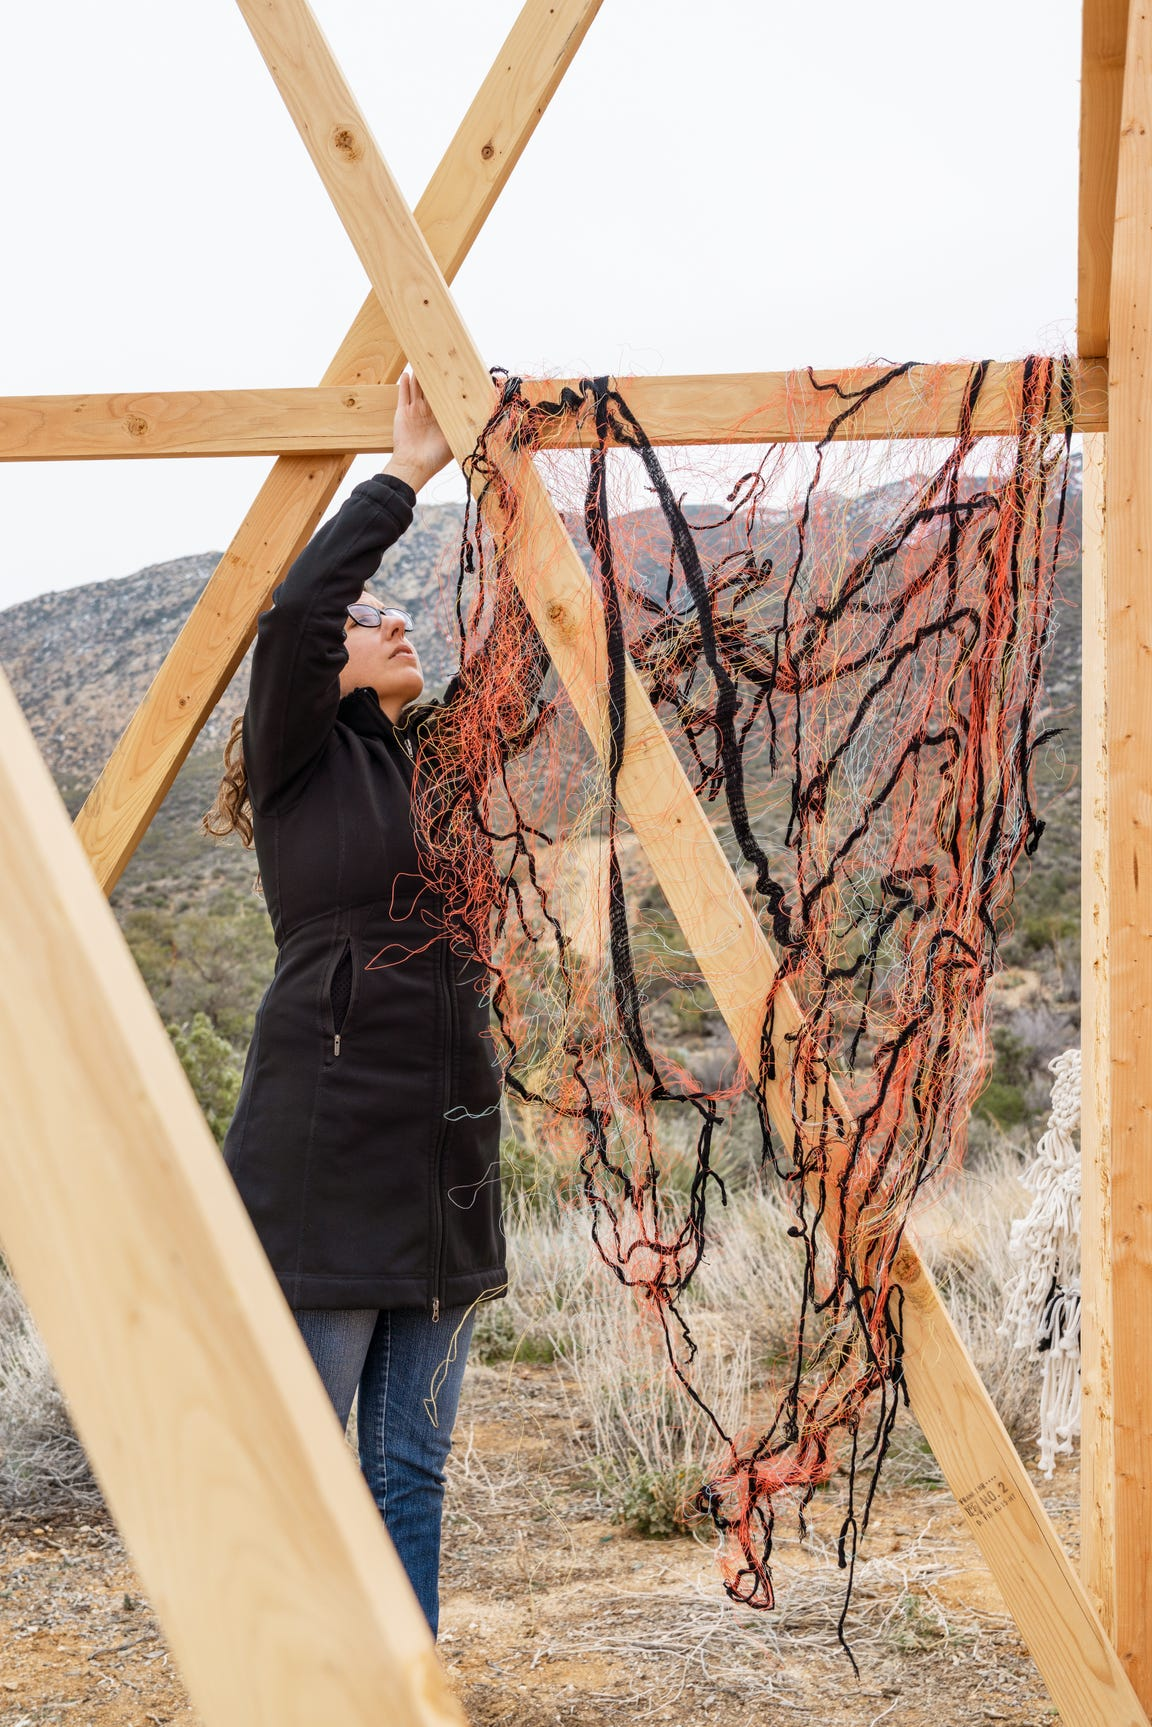 Artist Annette Heully works on her piece for Looming Shelter, a parallel project during Desert X 2019, at Makerville Studio.